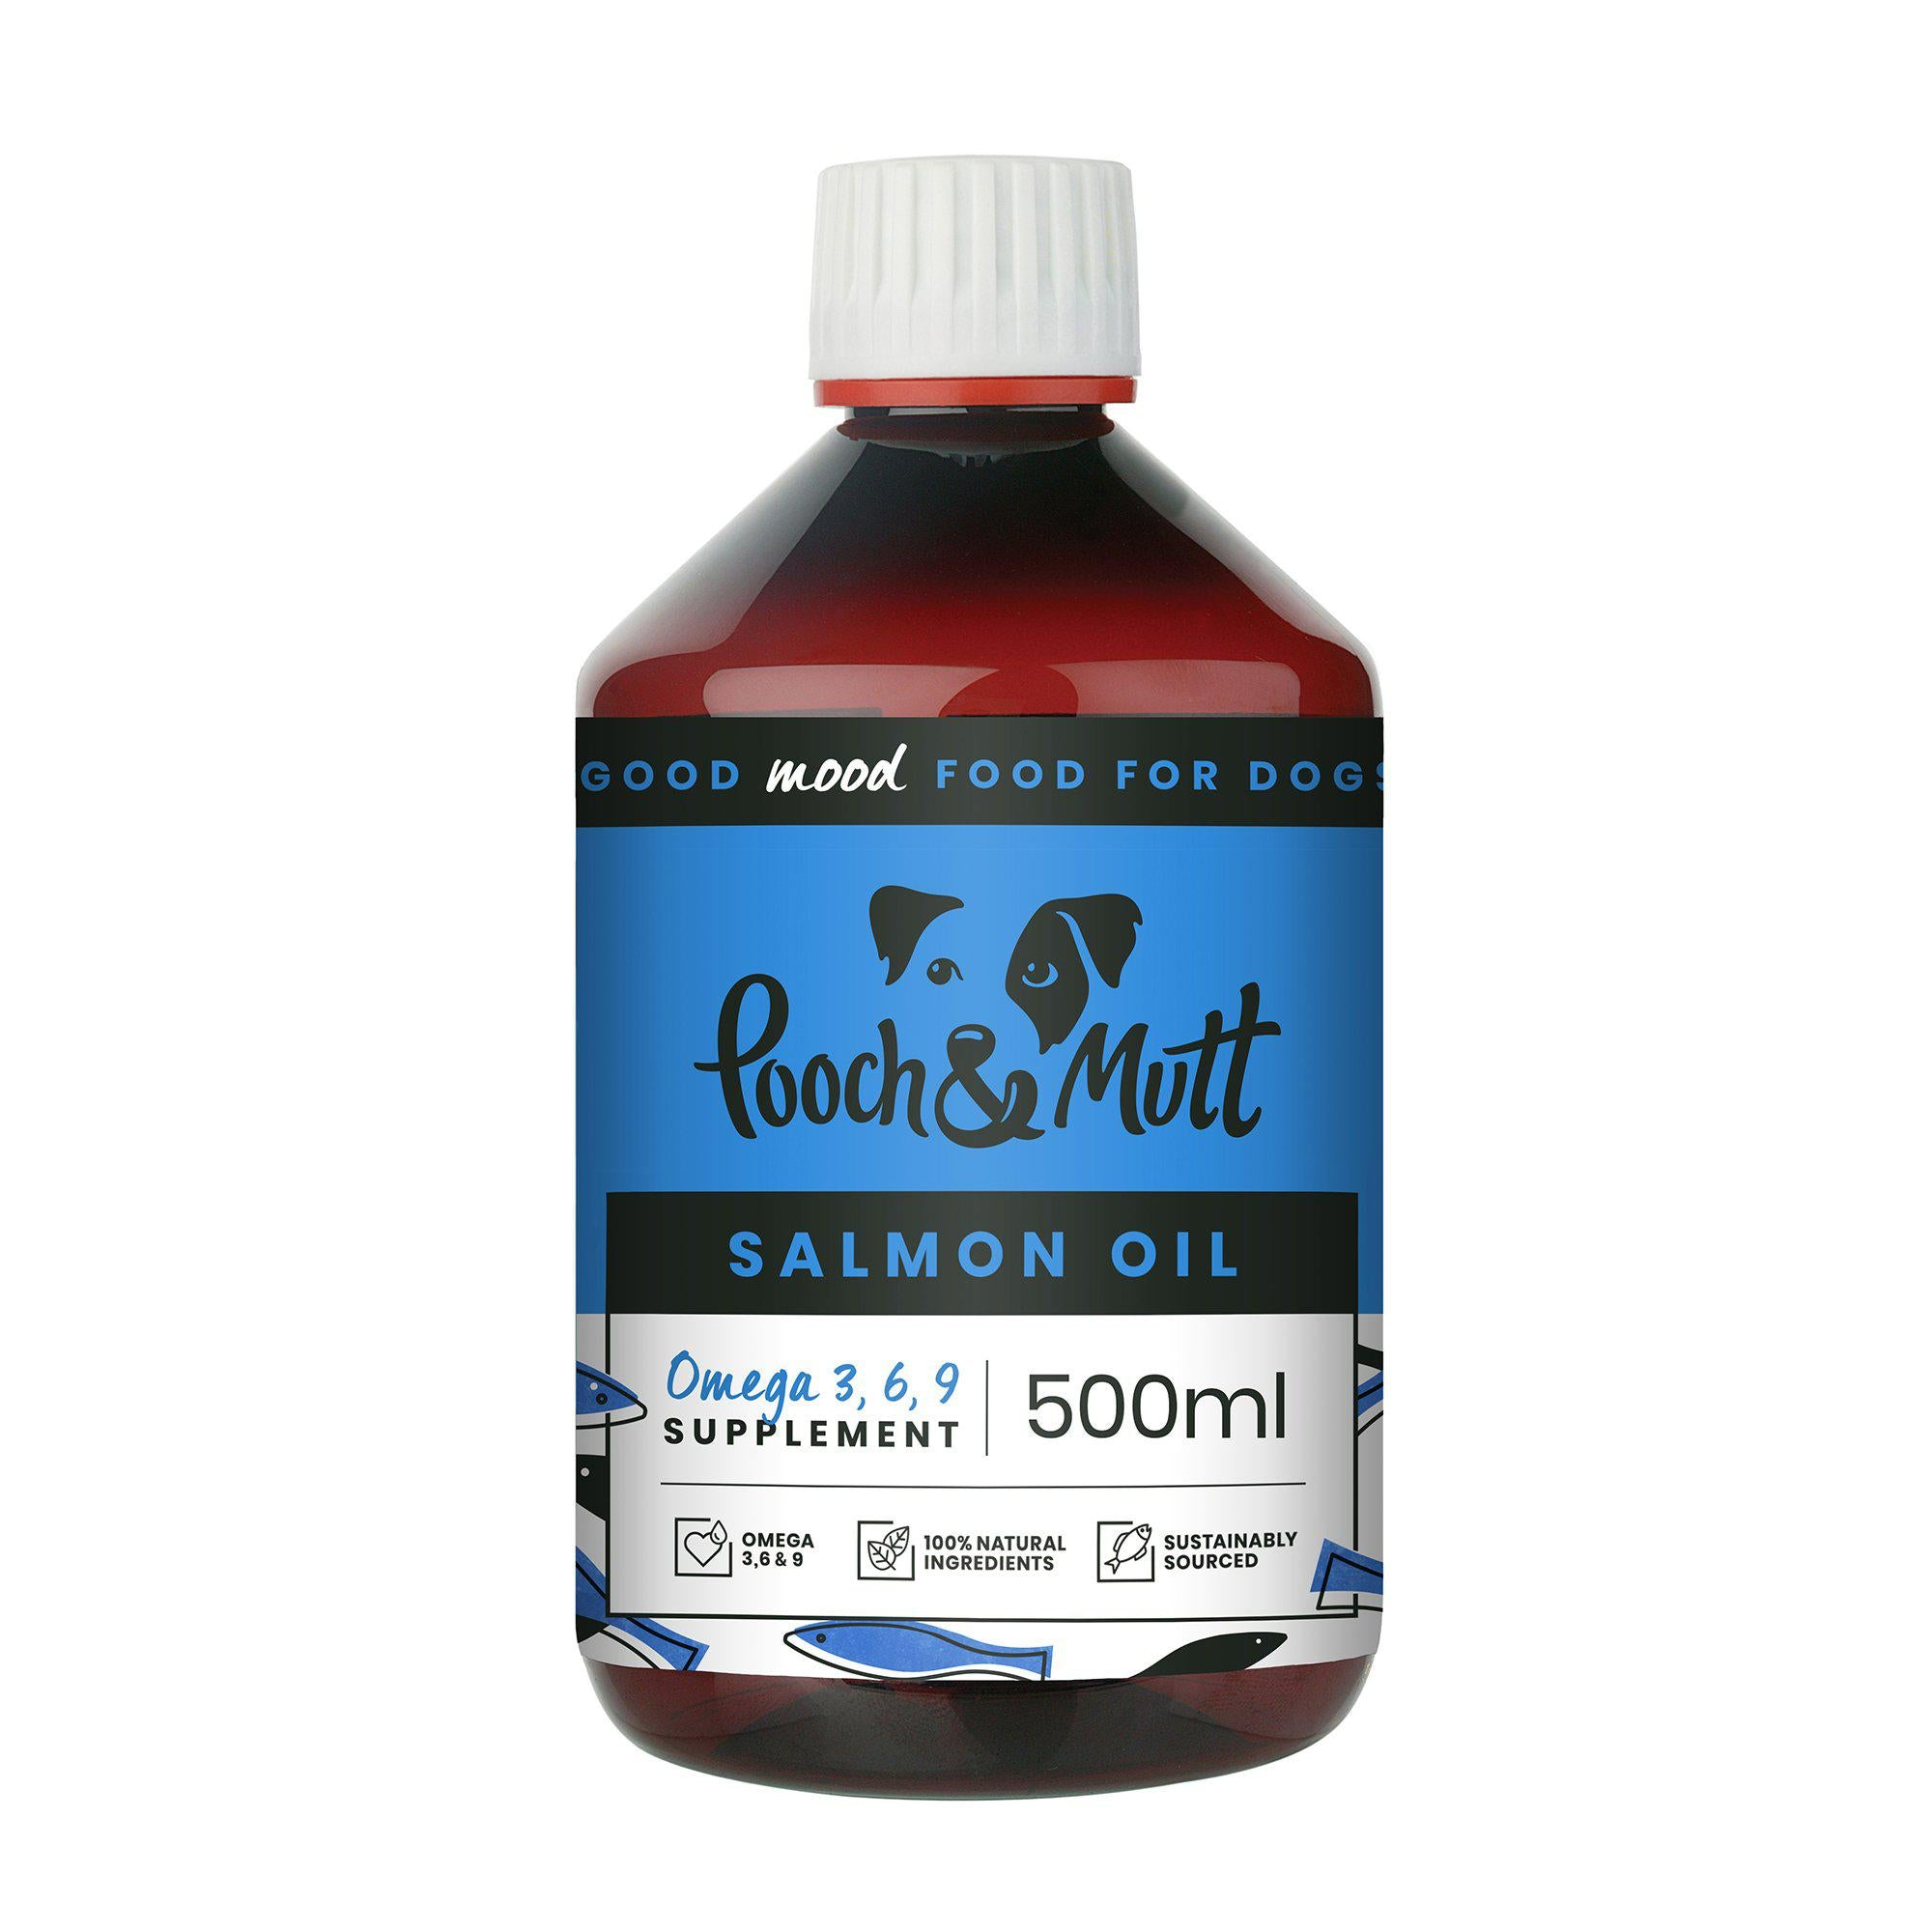 Salmon Oil-Pooch & Mutt